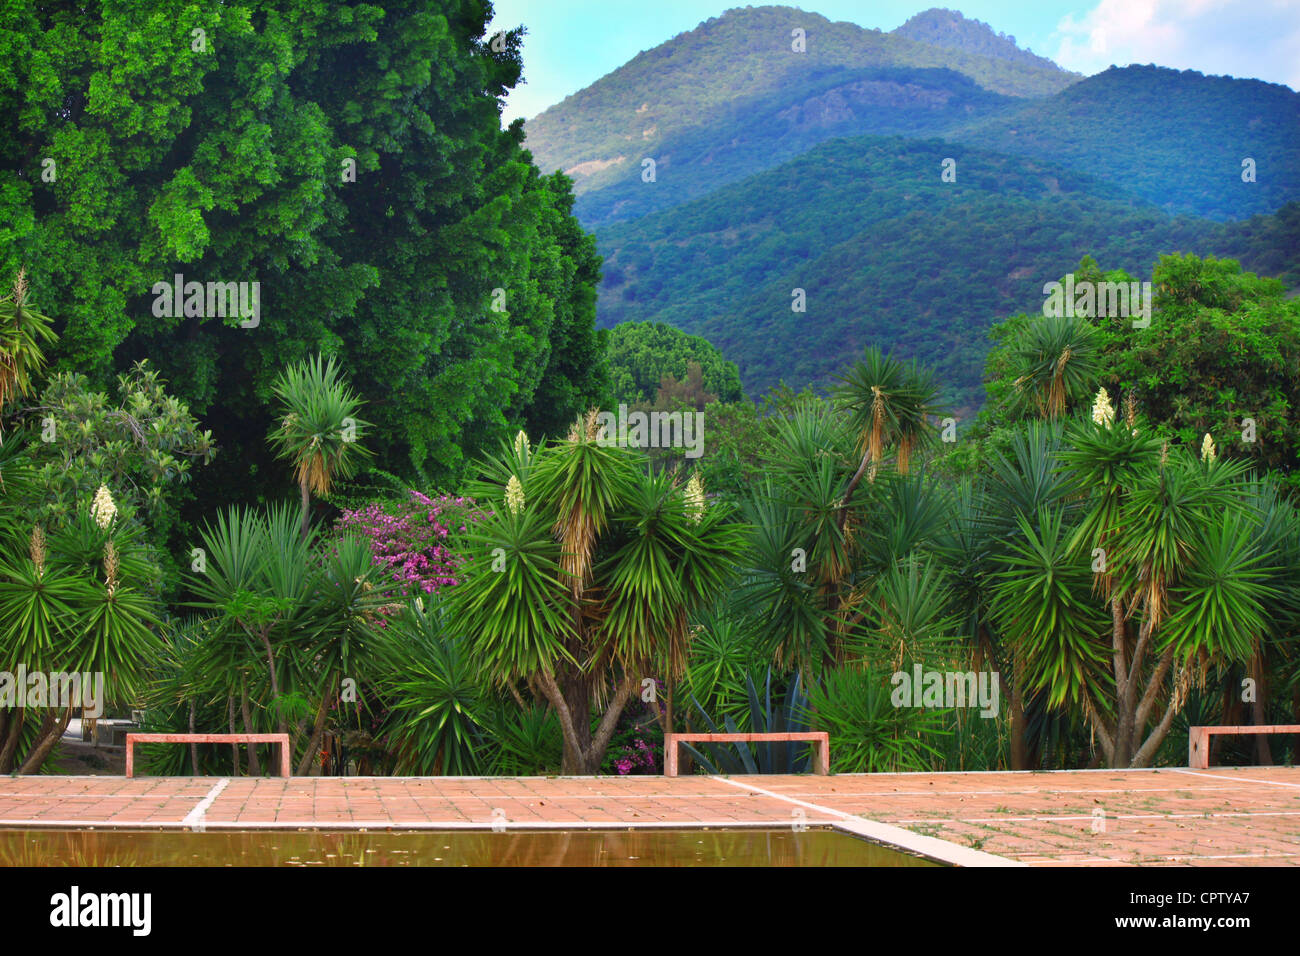 Edge of reflecting pool at garden looking out to yucca plants, ahuehuete trees and mountains in Vista Hermosa, San Stock Photo